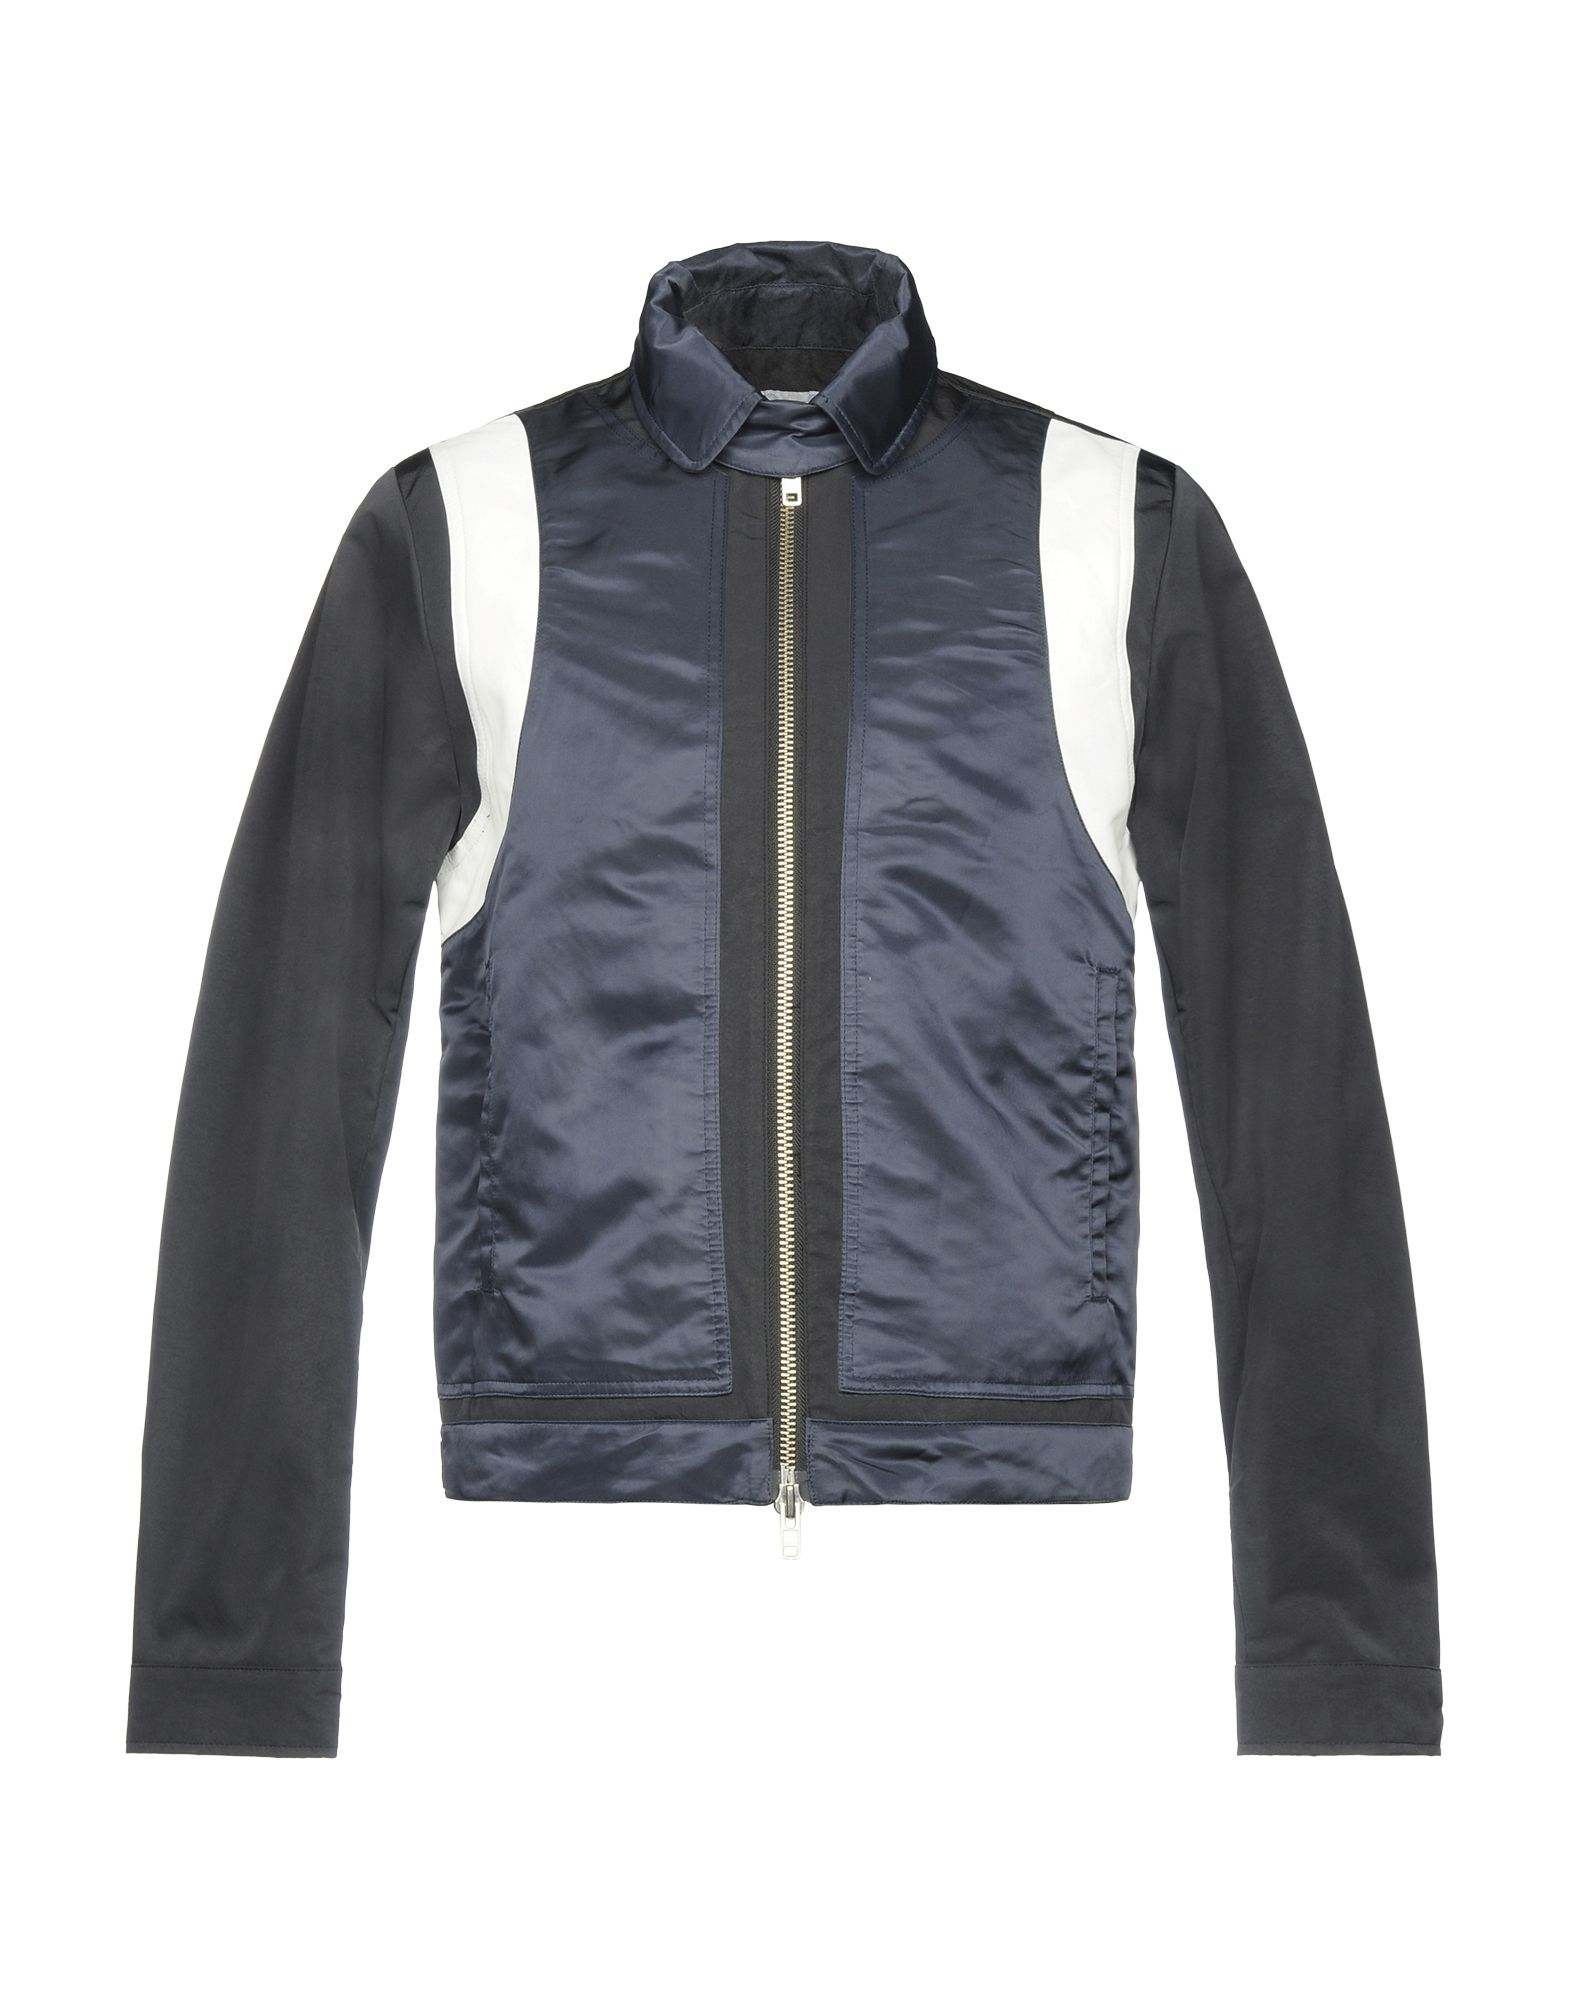 TIM COPPENS Jacket in Dark Blue